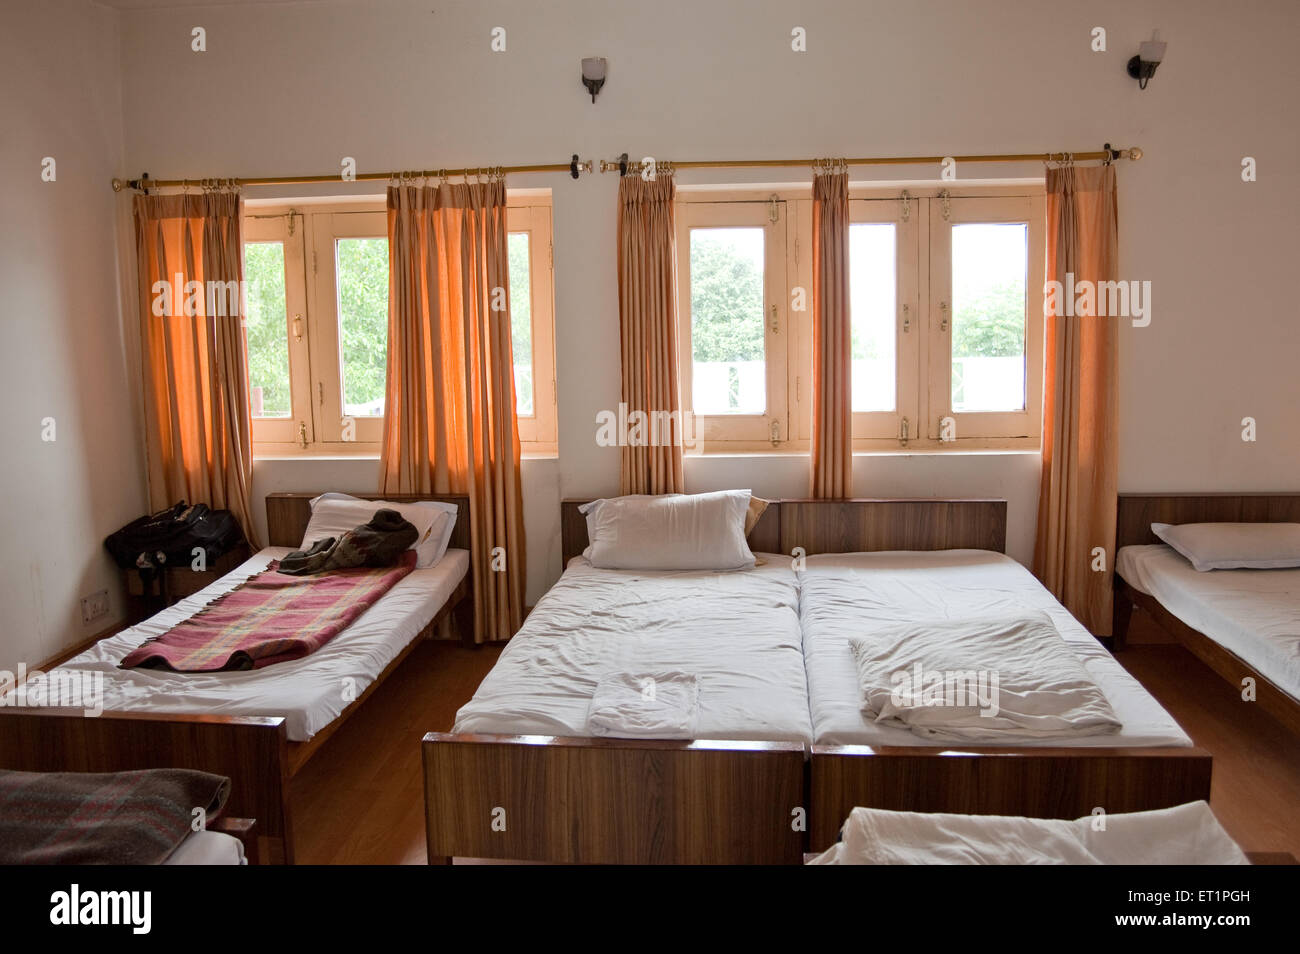 Row of beds in dormitory at sitlakhet hotel in uttarakhand India Asia - Stock Image